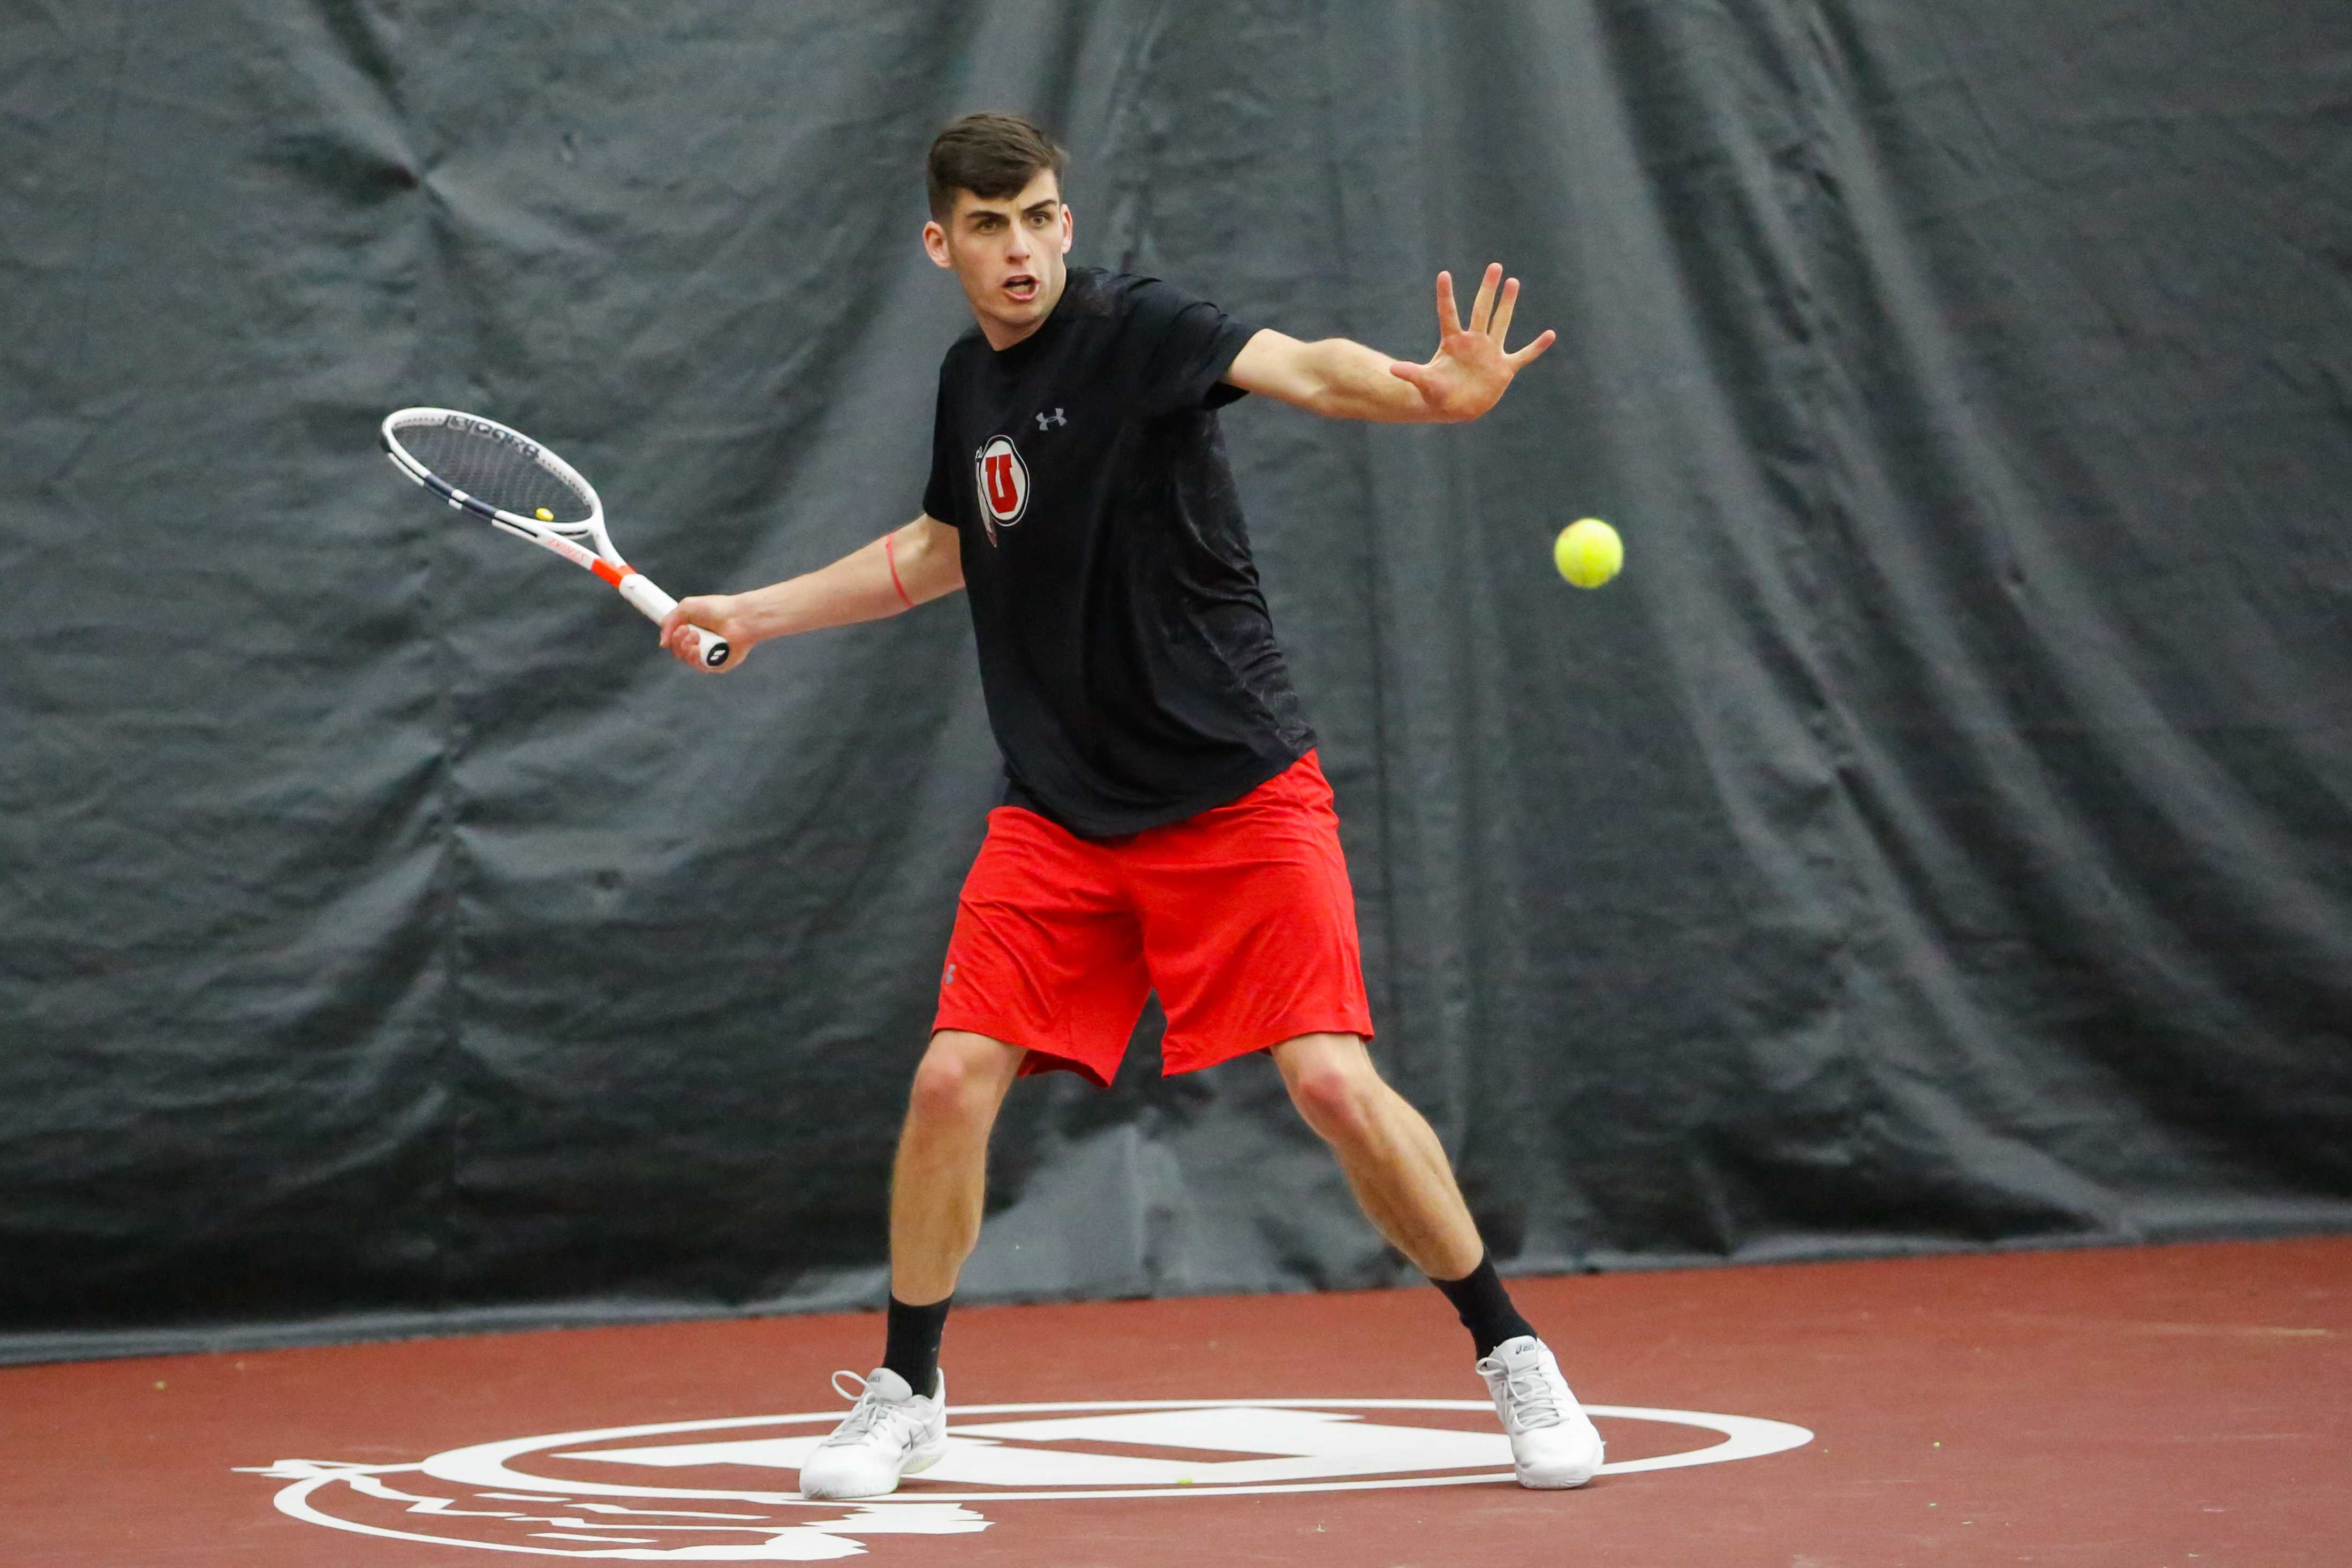 Dan Little returned the ball with a forehand as the  Utah Utes Men's Tennis team take on the Utah State Aggies at George S. Eccles Tennis Center in Salt Lake City, UT on Sunday, January 21, 2018.  (Photo by Curtis Lin/ Daily Utah Chronicle)